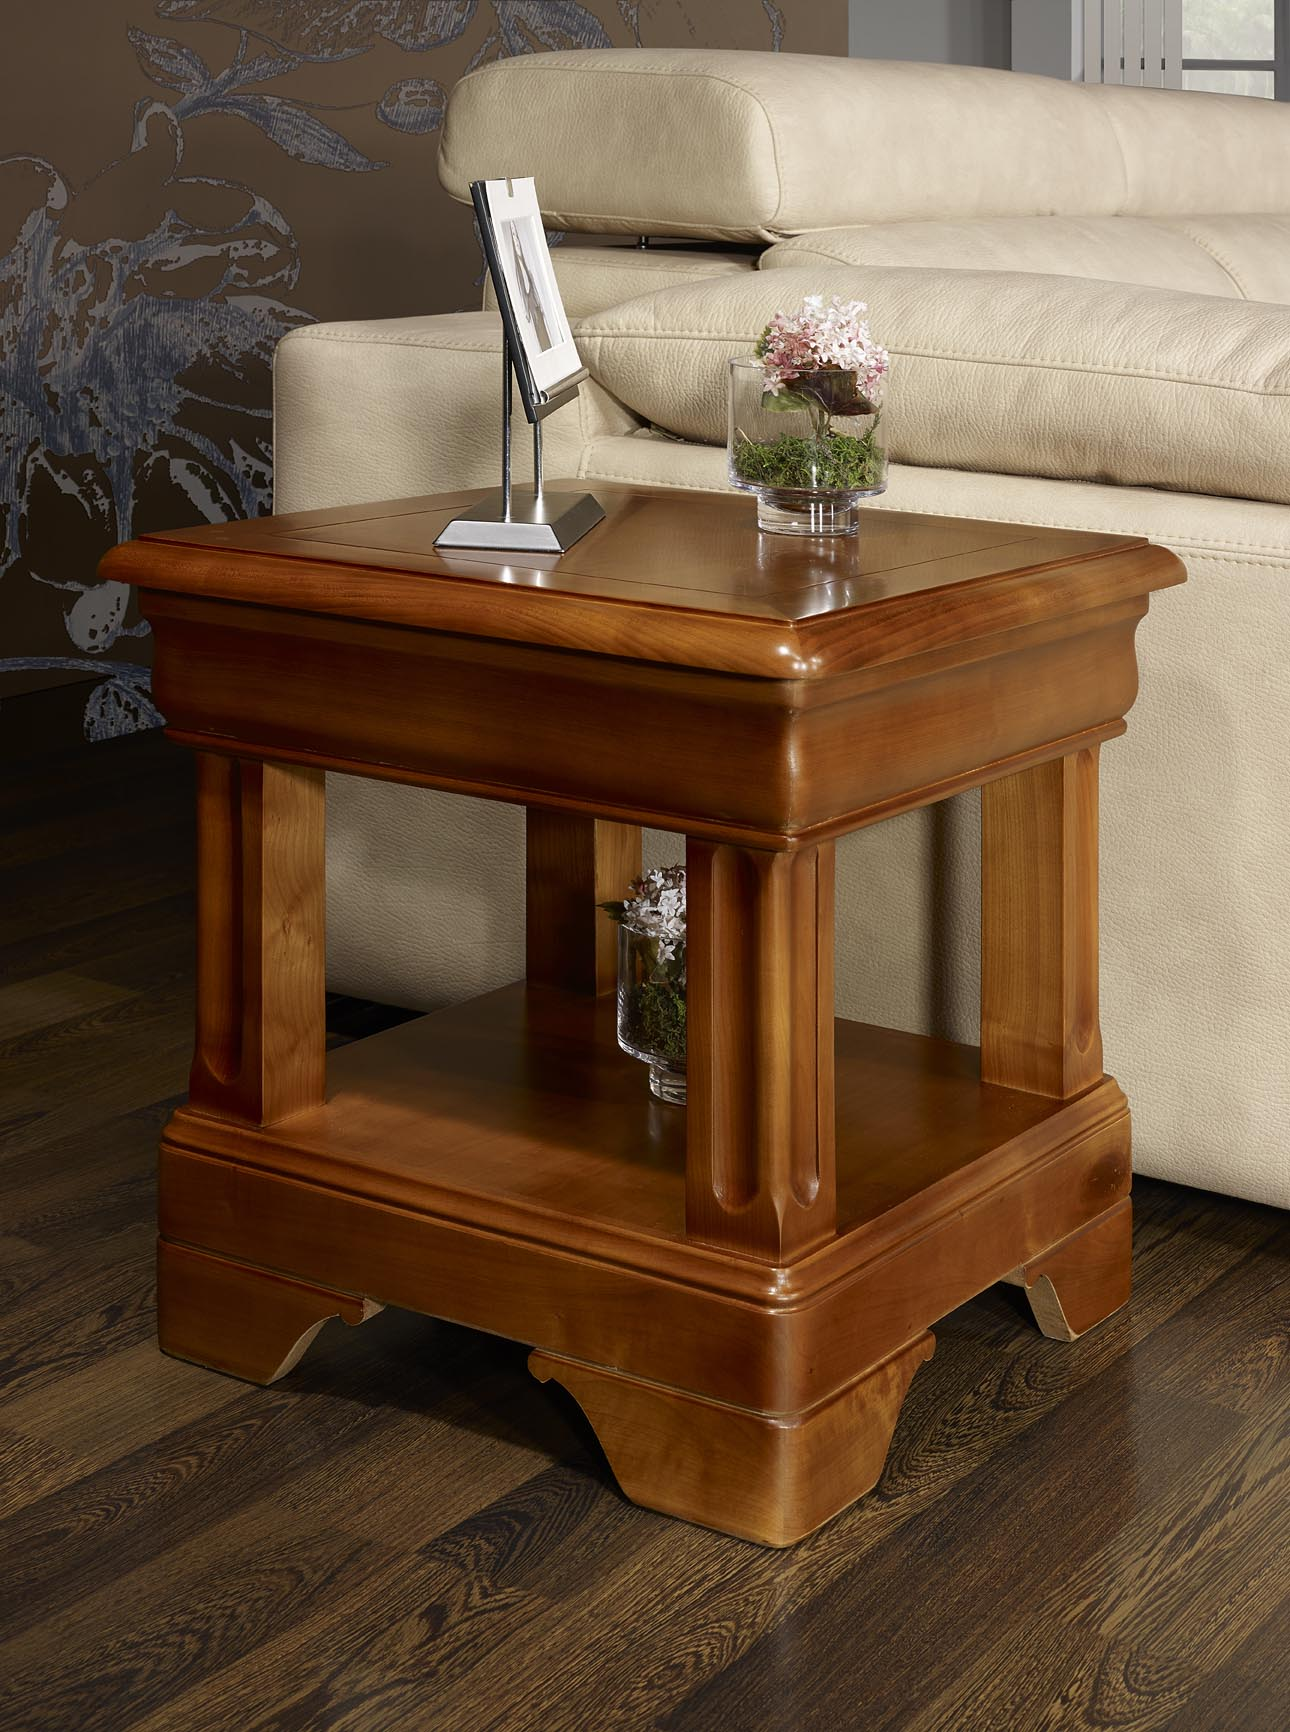 Bout de canap ou table basse en merisier de style louis philipe meuble en - Petite table basse carree ...